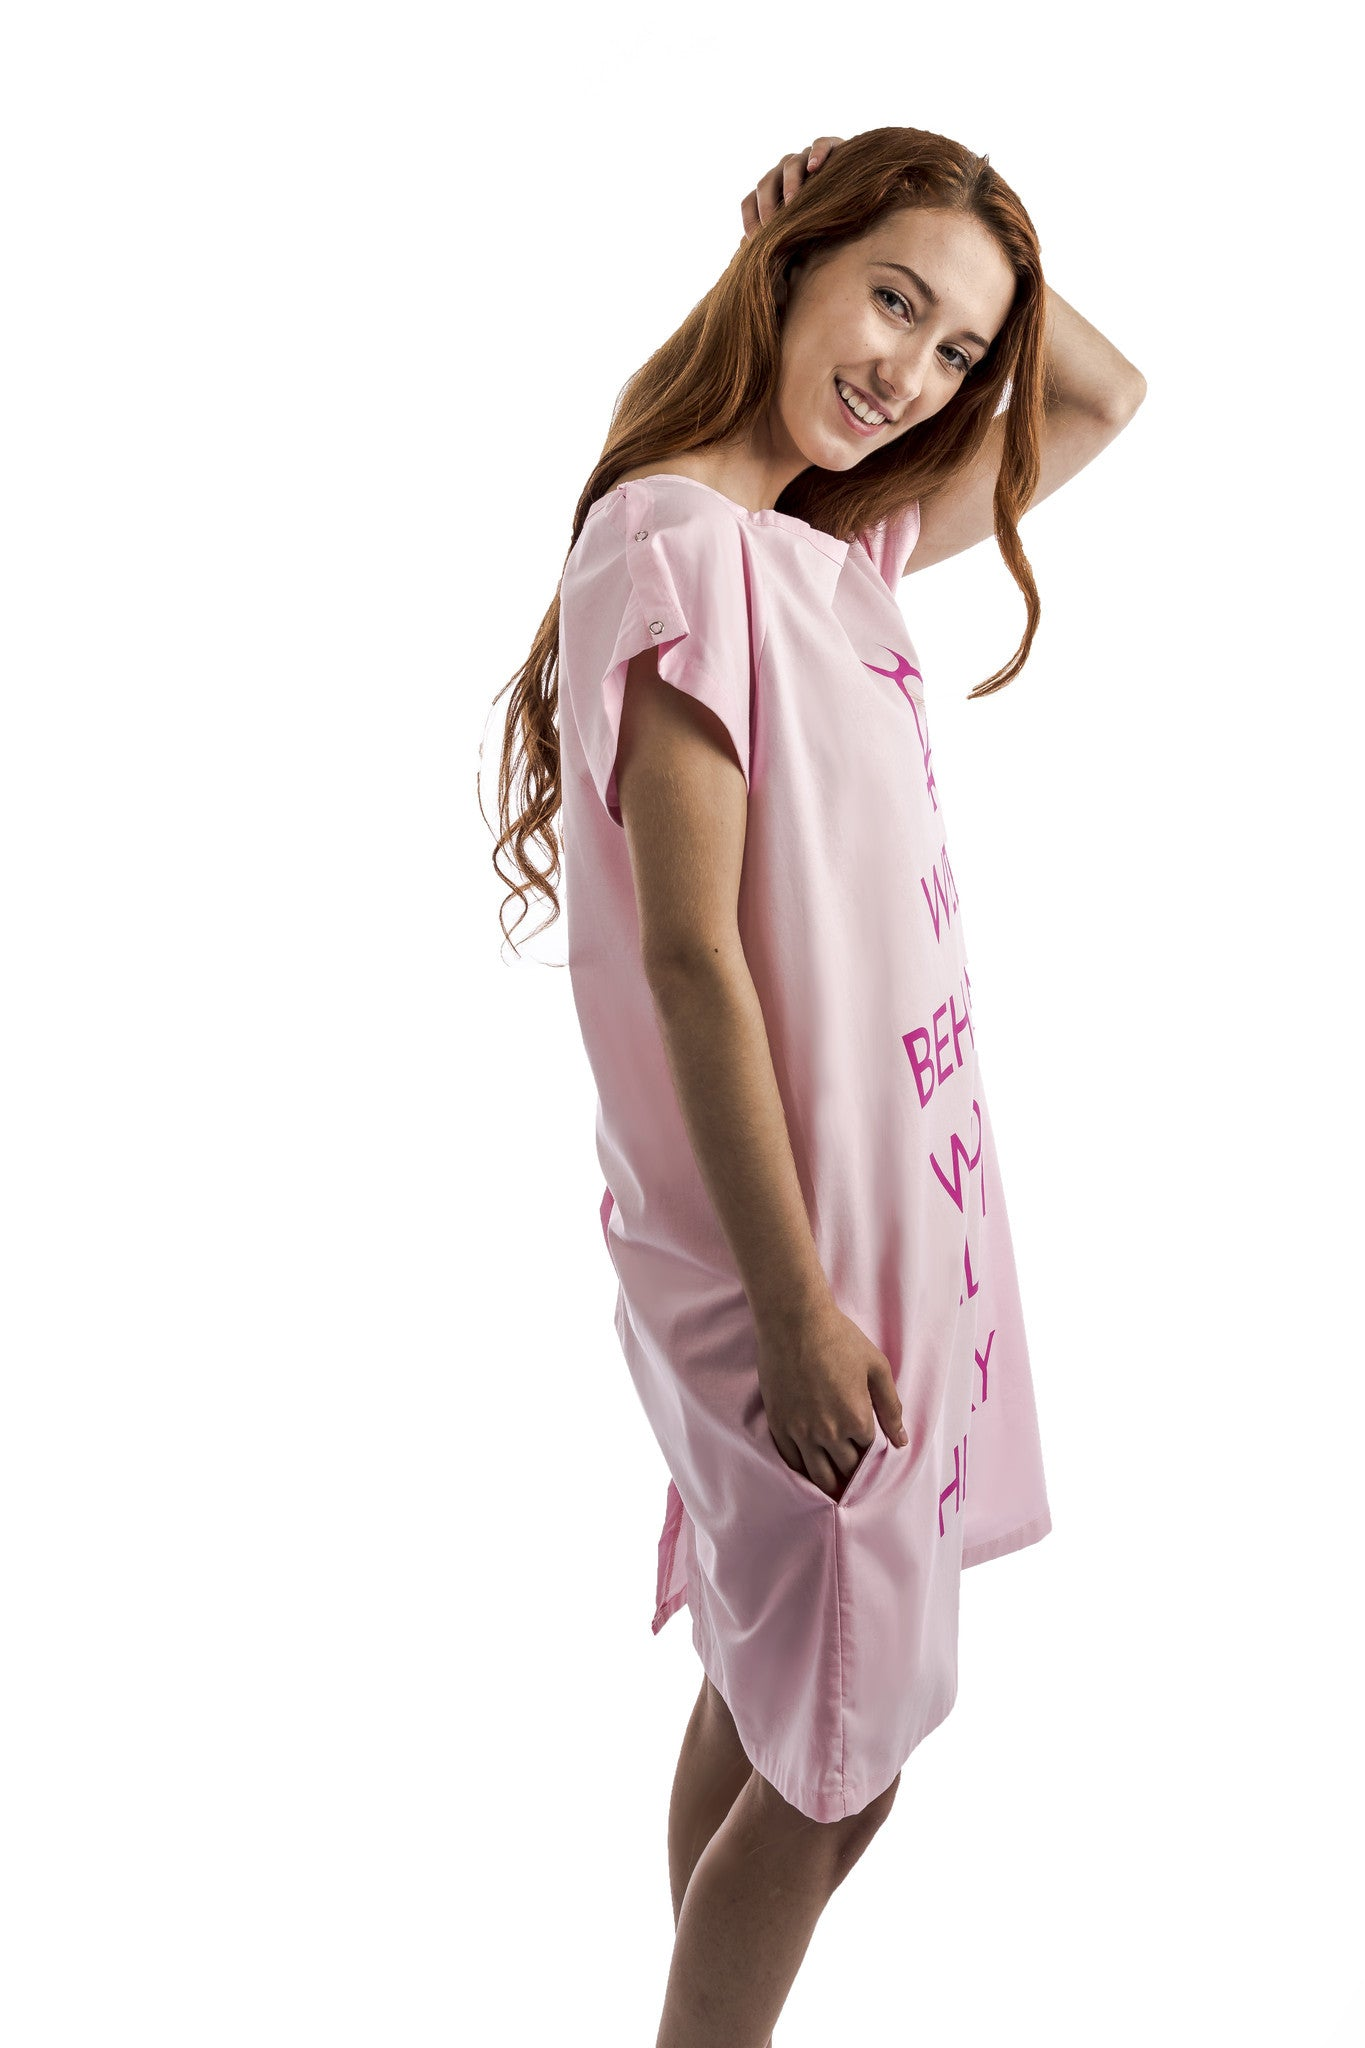 funny hospital gift for women pink gown side